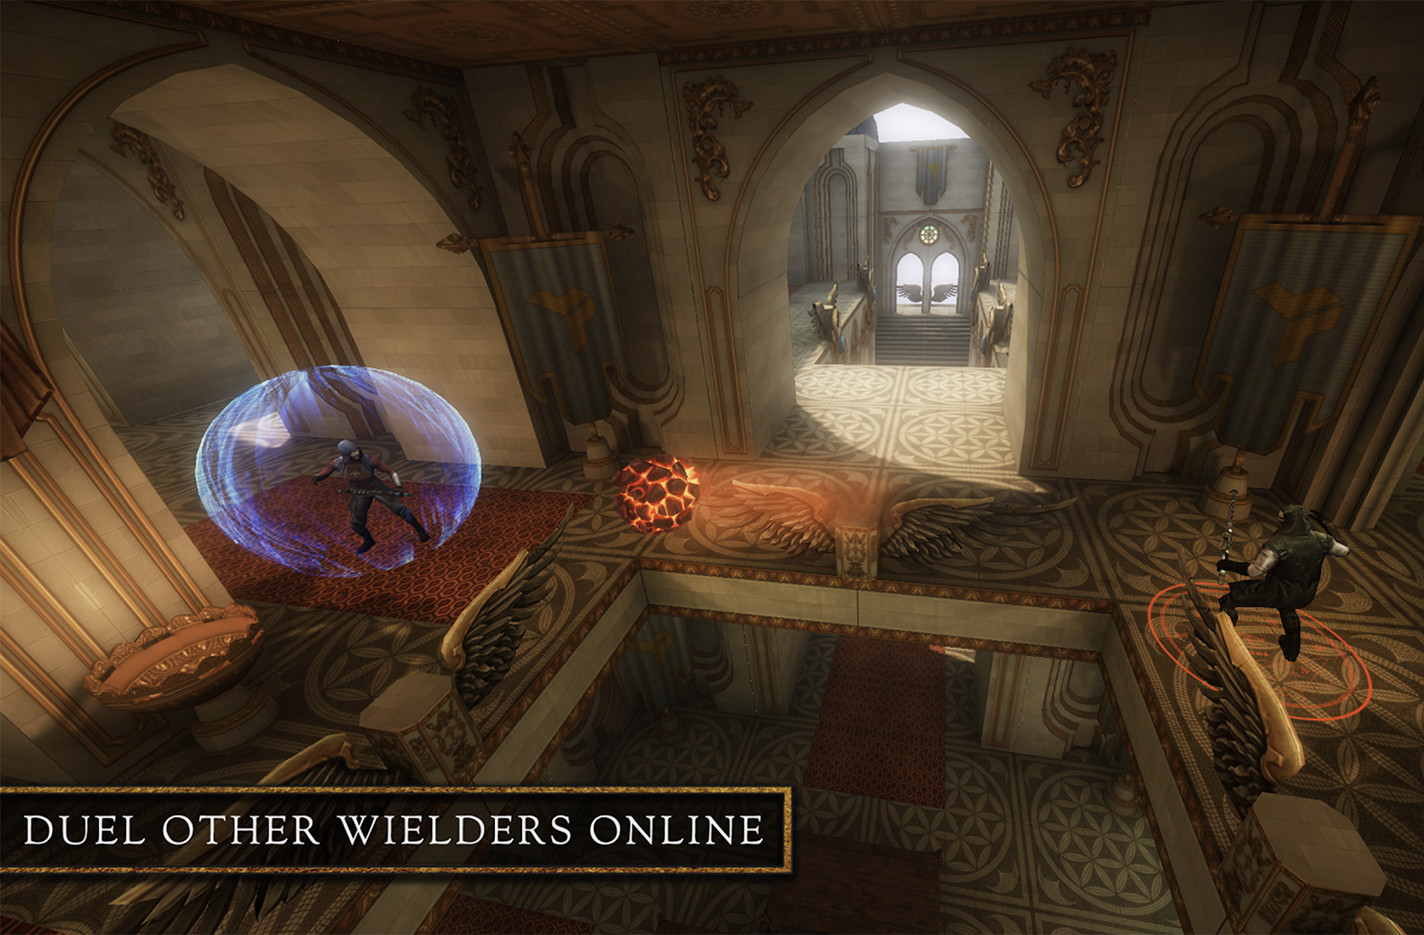 Wands review on Google Daydream: Wizard duels come to life